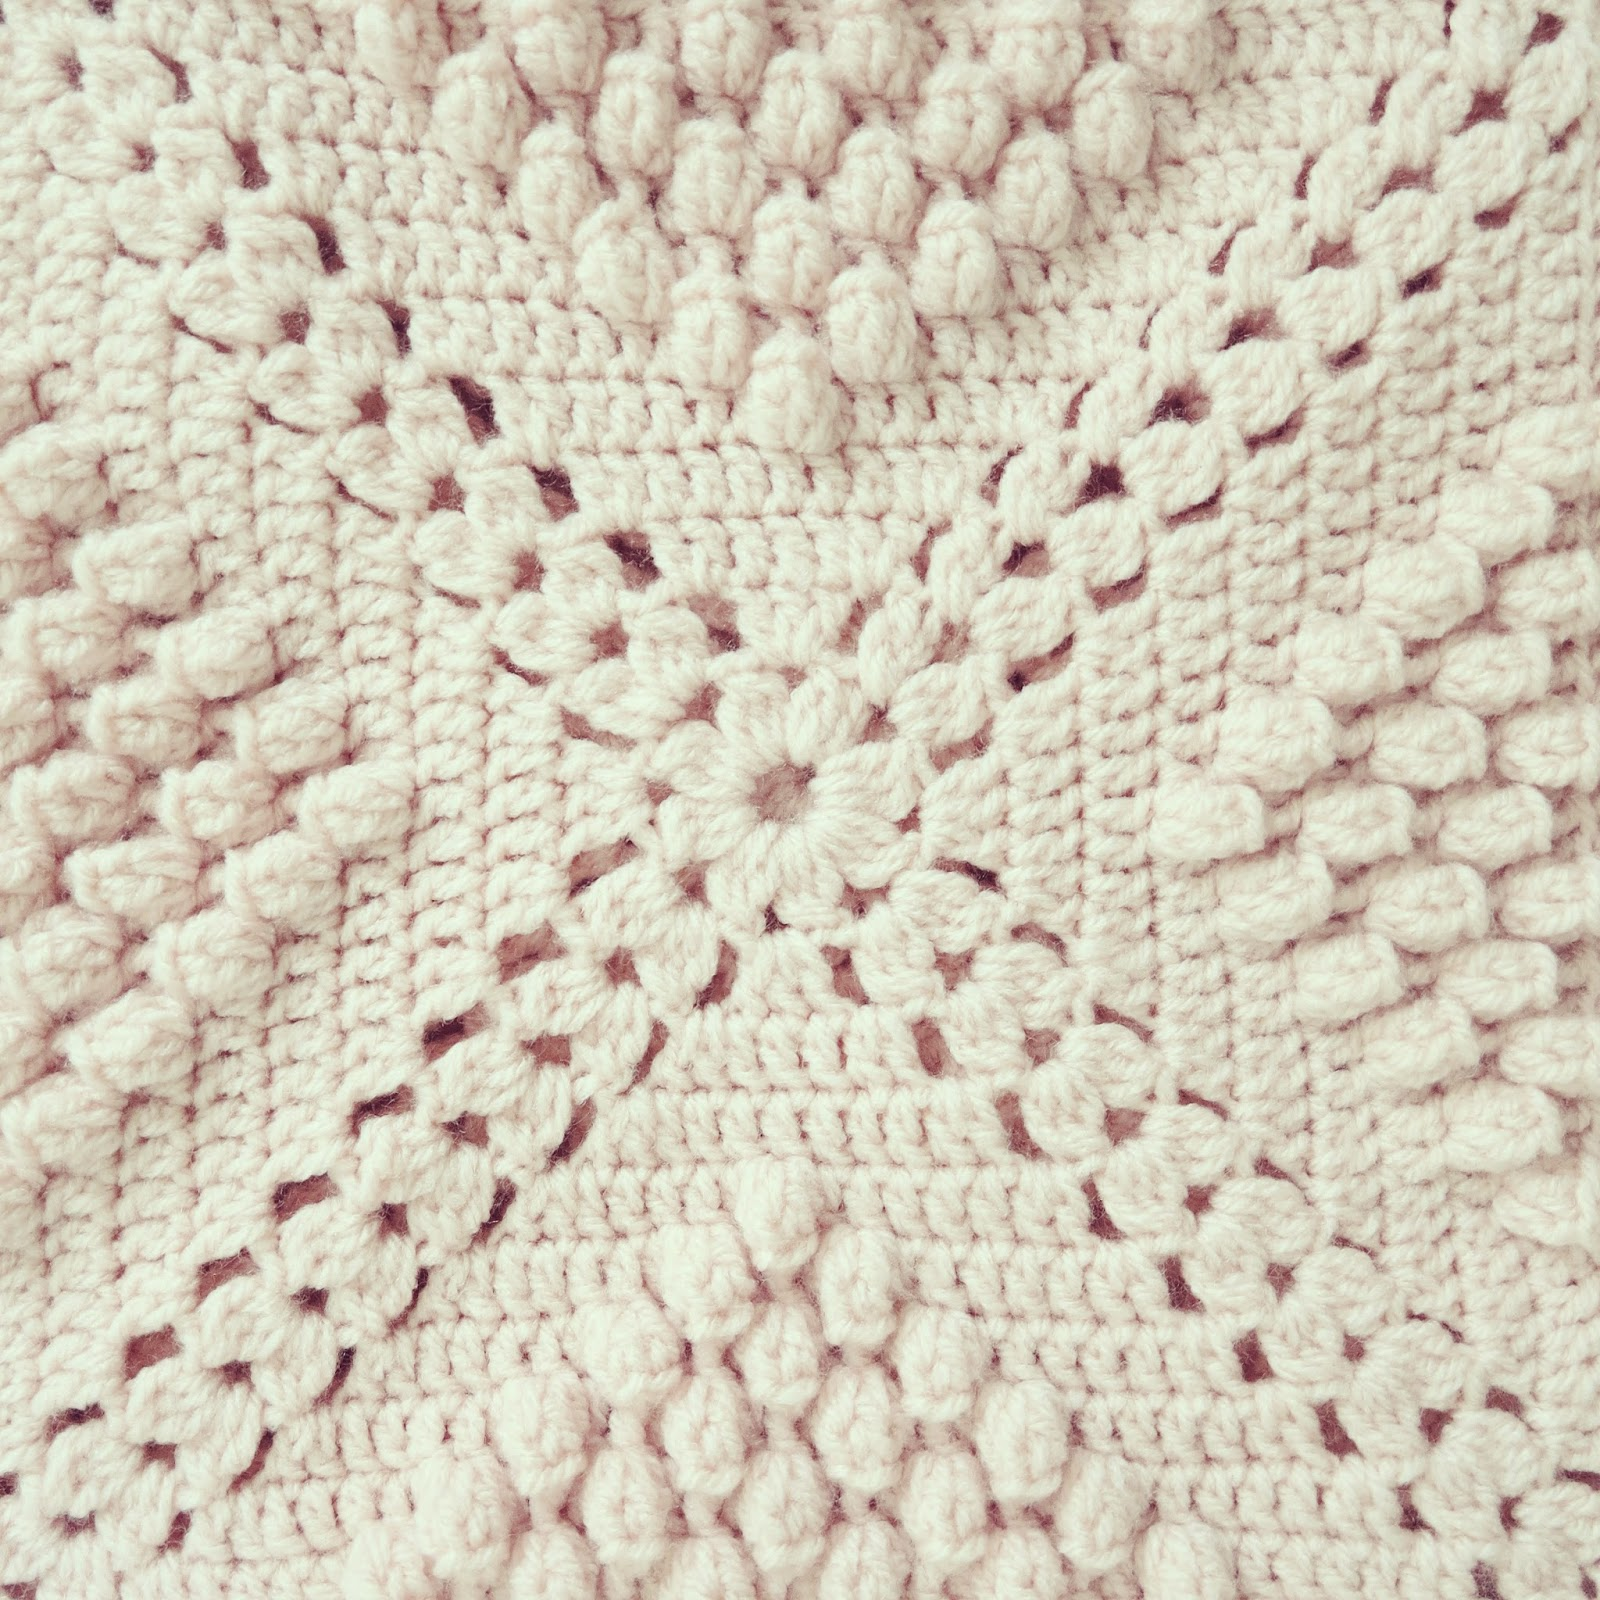 Crochet Stitches Designs : ... of 5 completed double crochets in 1 one stitch,they are then joined